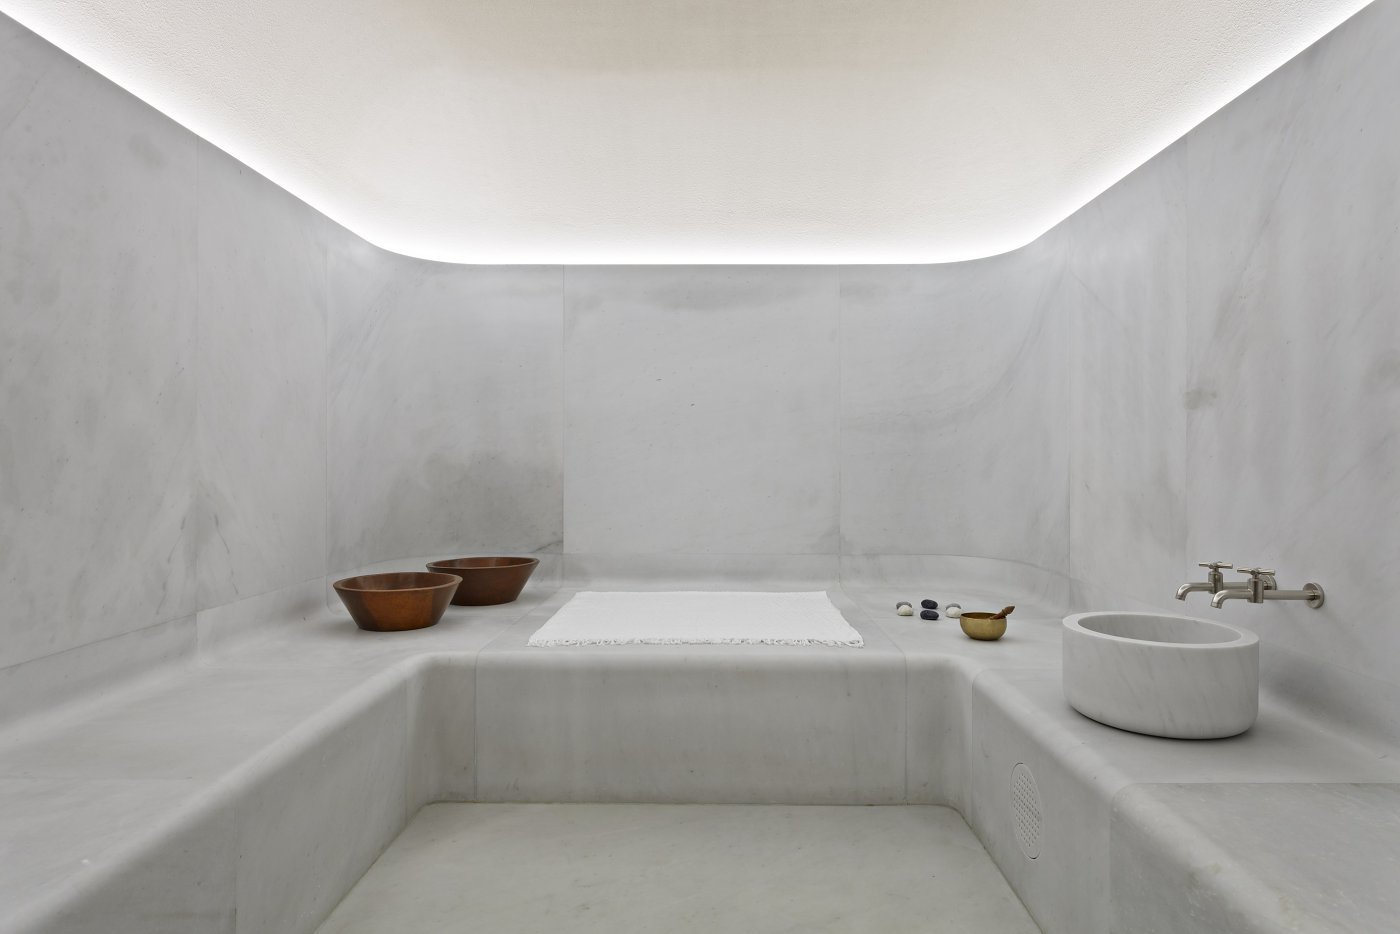 hotelcaferoyal-akasha-hammam_steamroom Chipperfield